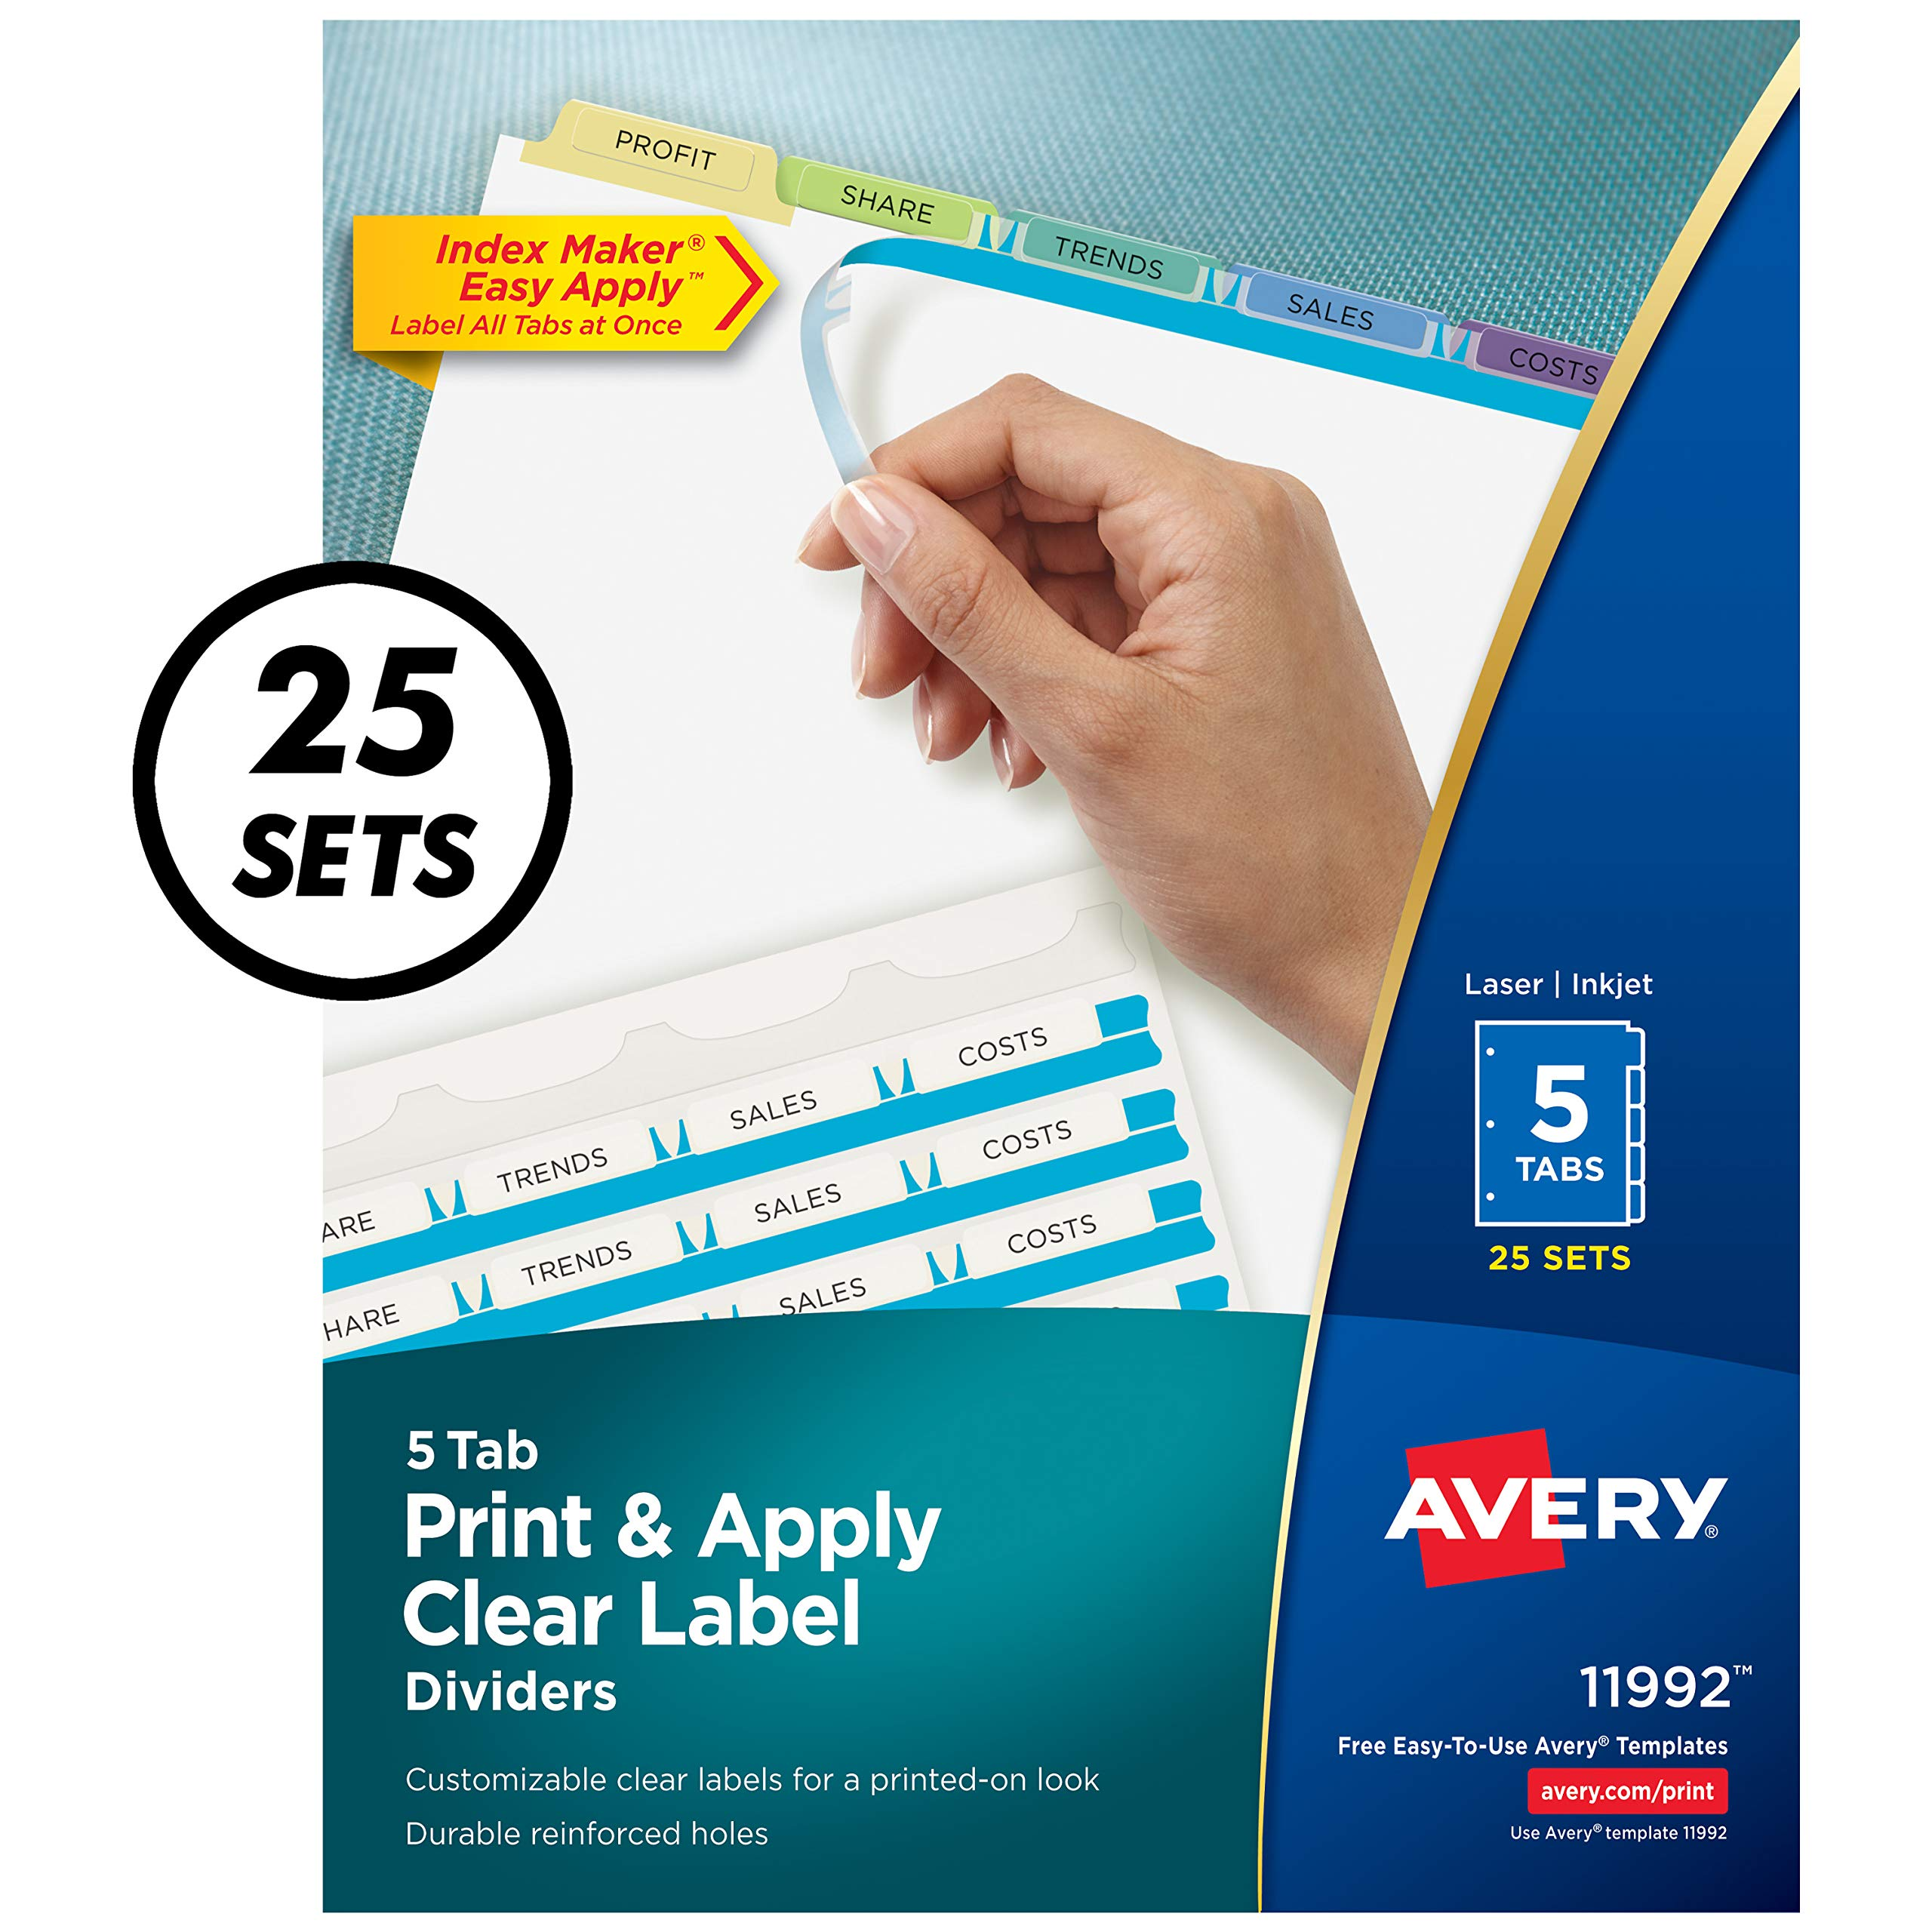 Avery 5-Tab Binder Dividers, Easy Print & Apply Clear Label Strip, Index Maker, Pastel Tabs, 25 Sets (11992) by Avery